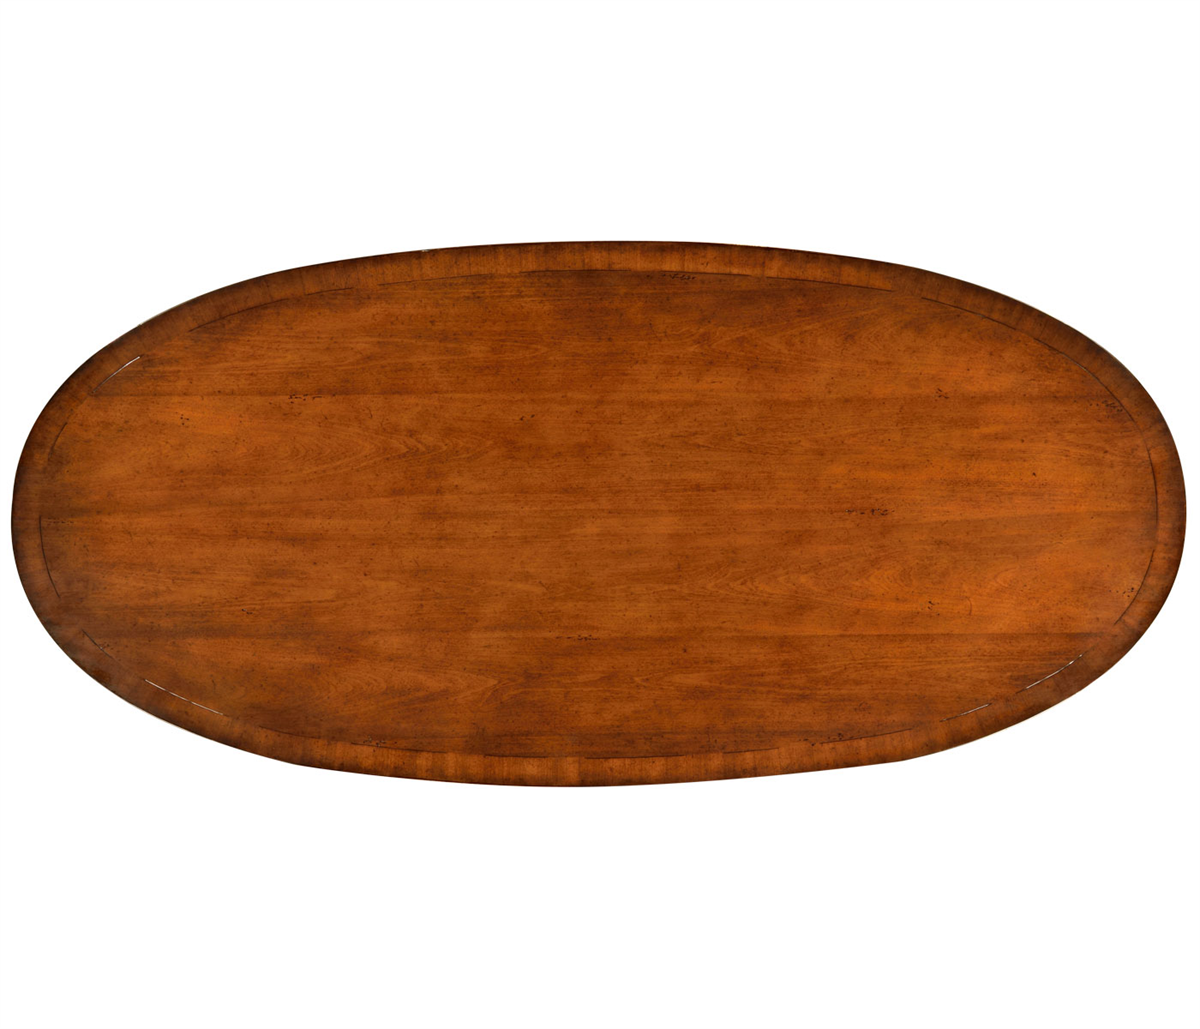 Large oval